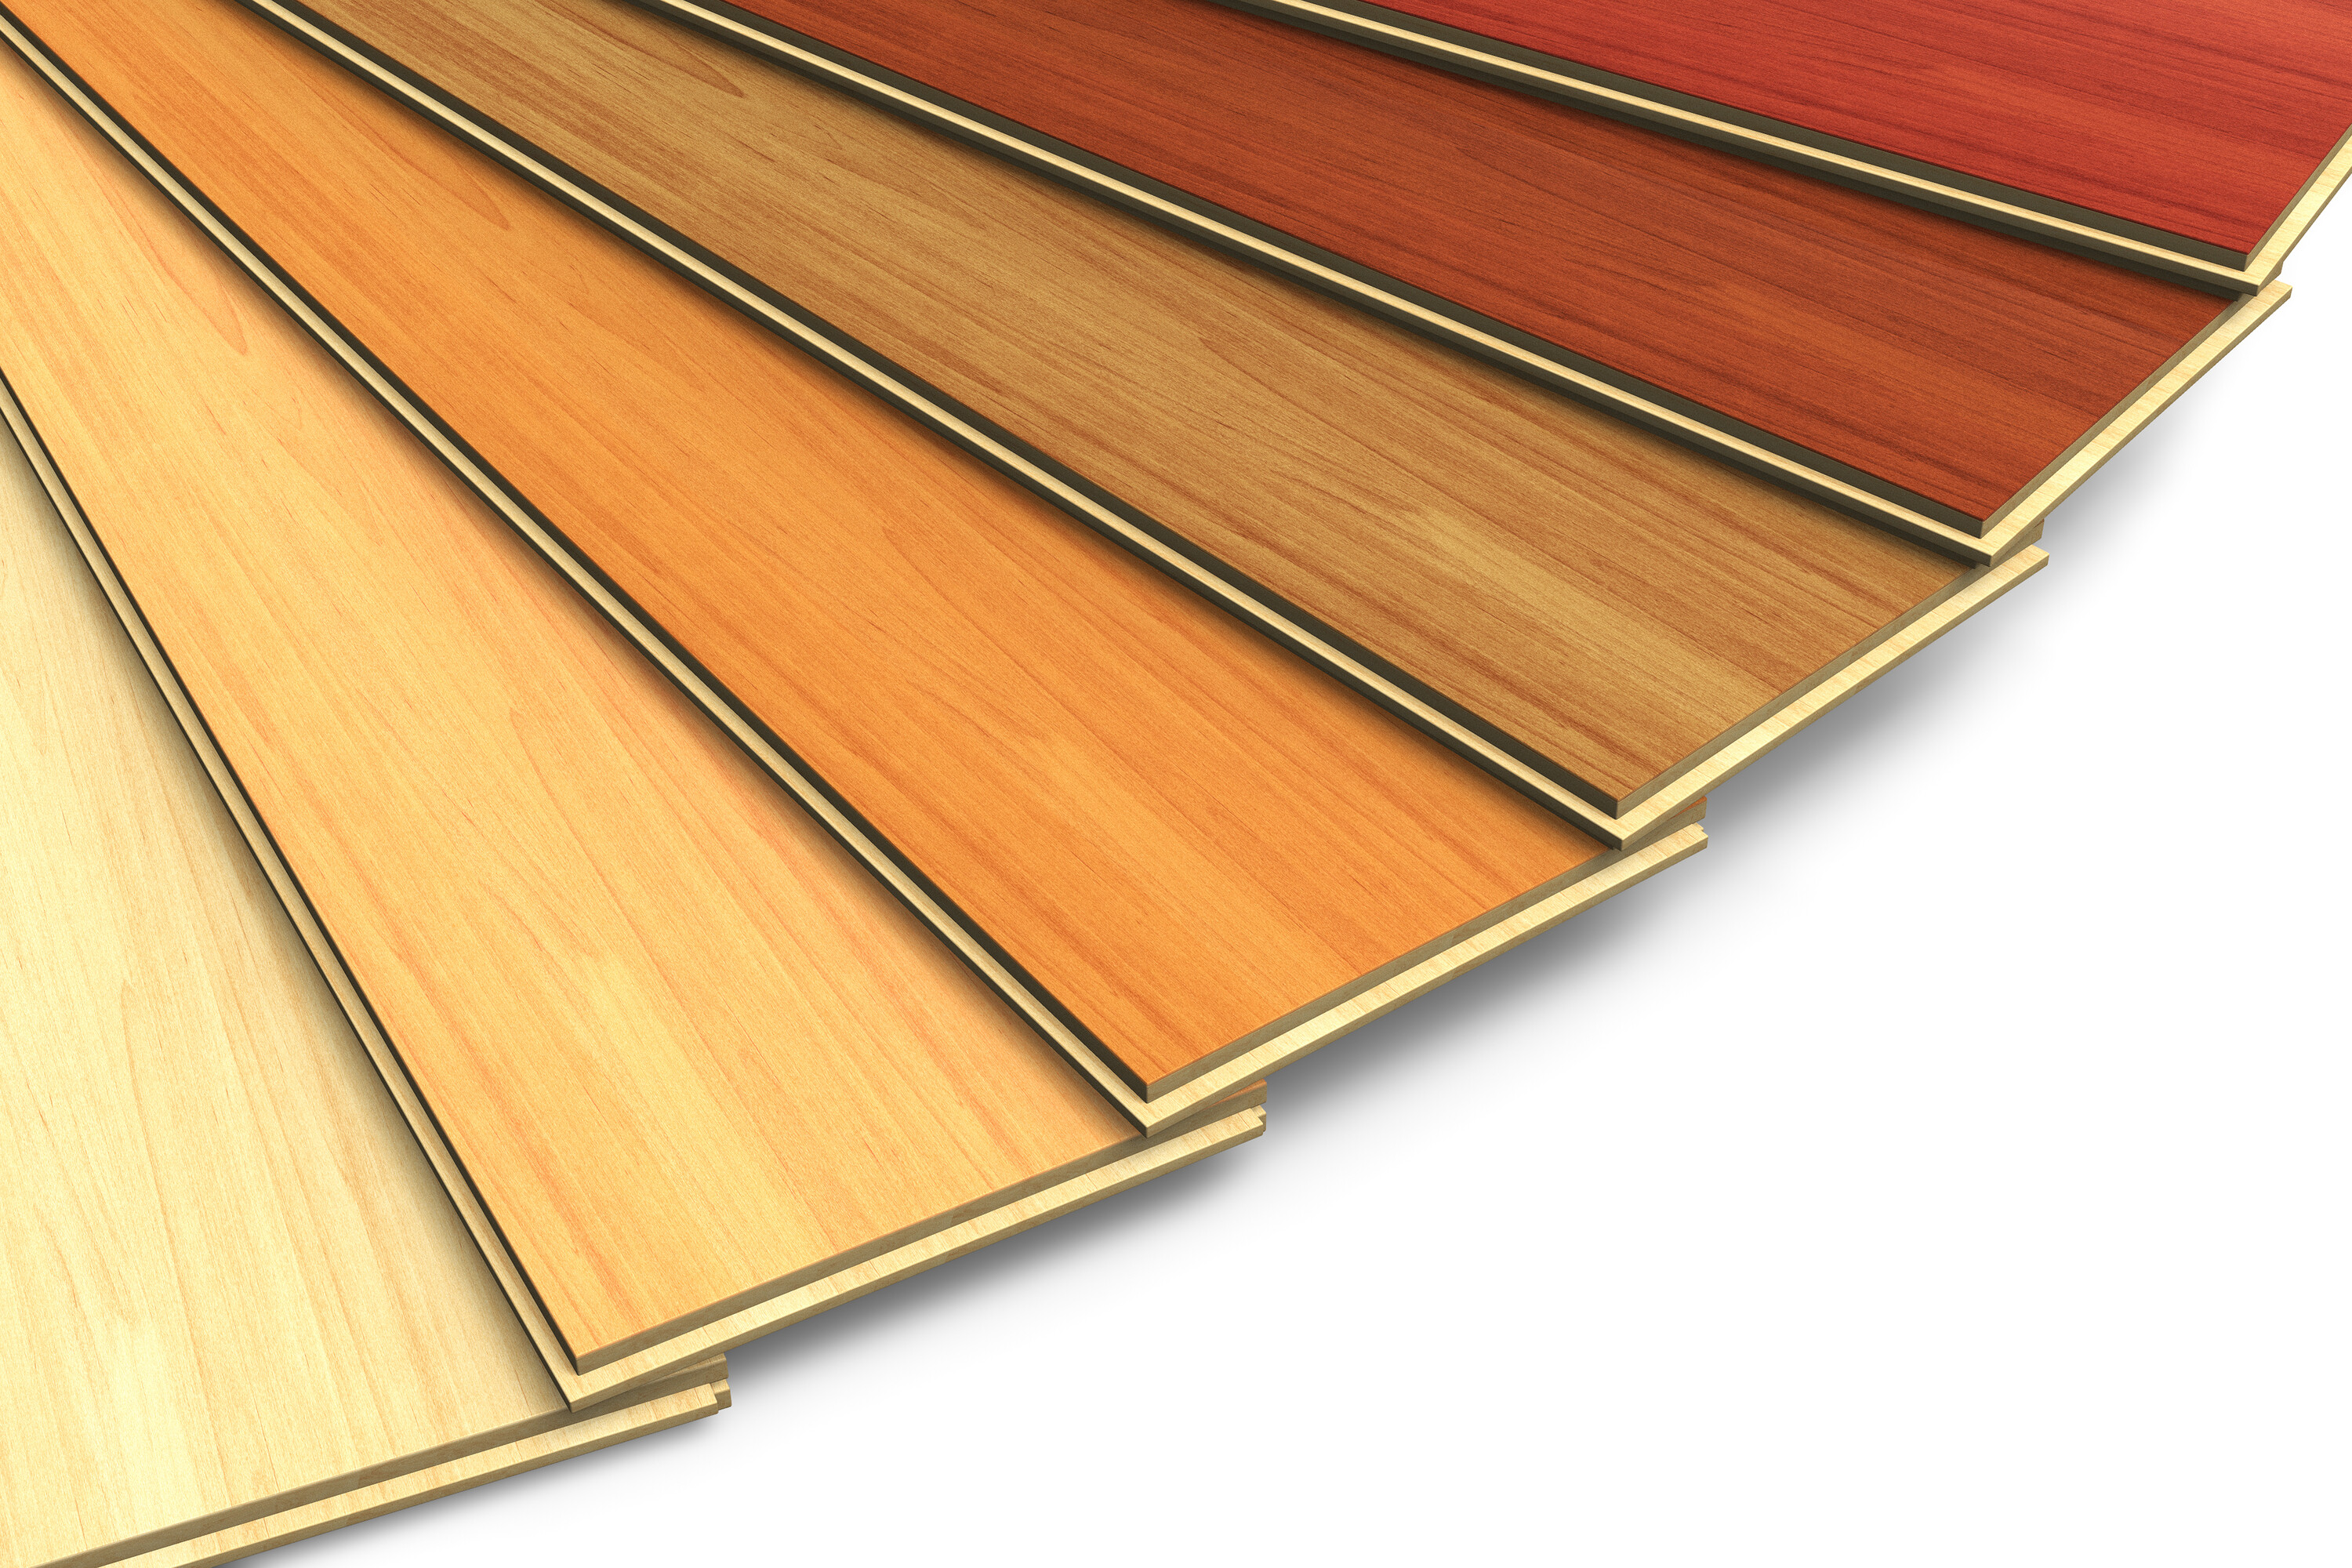 Laminate flooring samples fanned out showing different colors and styles in Concord, CA